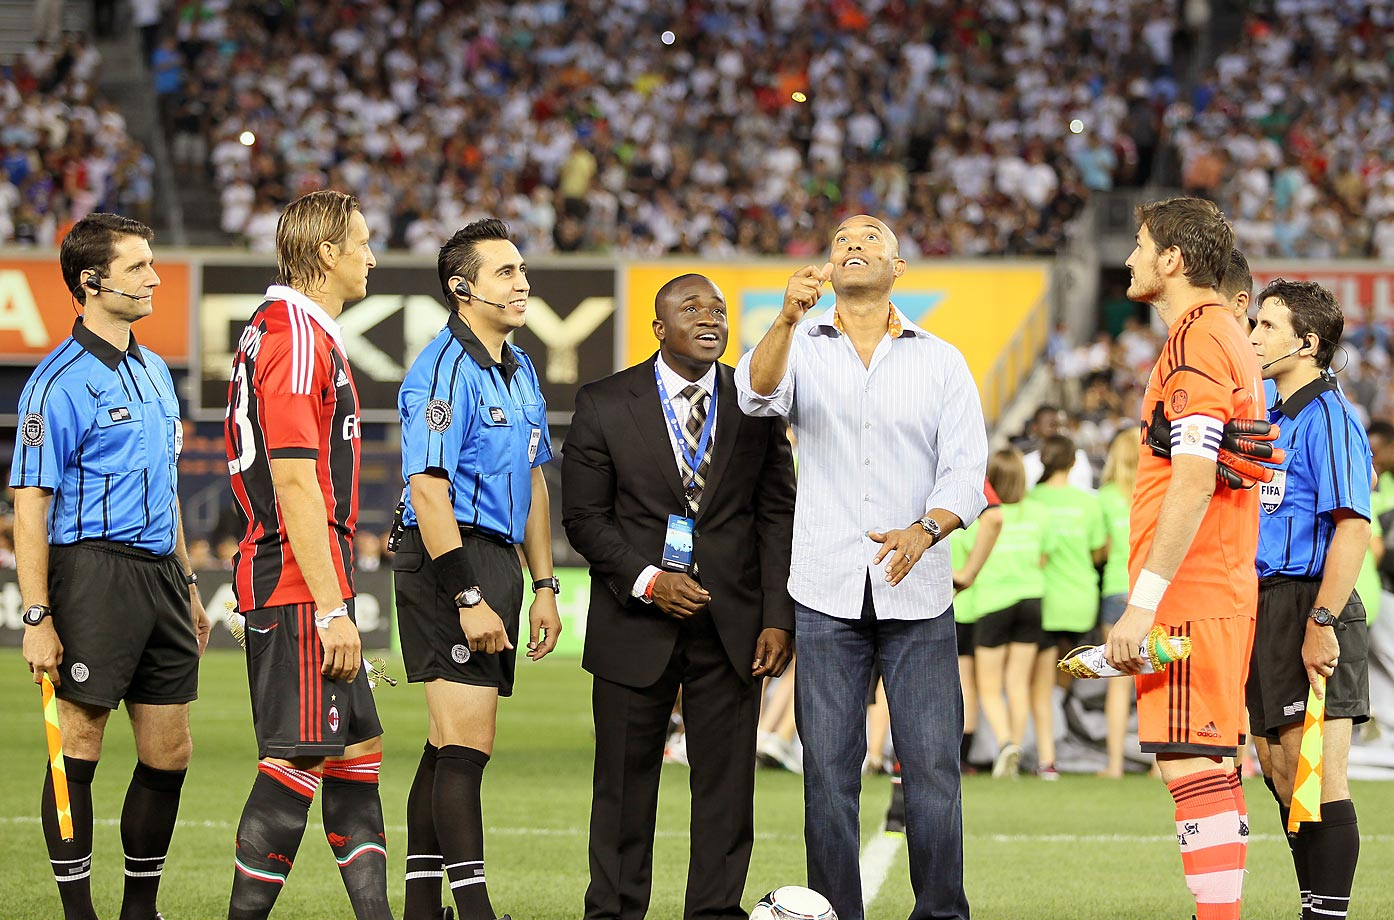 Mariano Rivera  of the New York Yankees tosses the coin before the International Friendly match between Real Madrid and AC Milan at Yankee Stadium on Aug. 8, 2012.